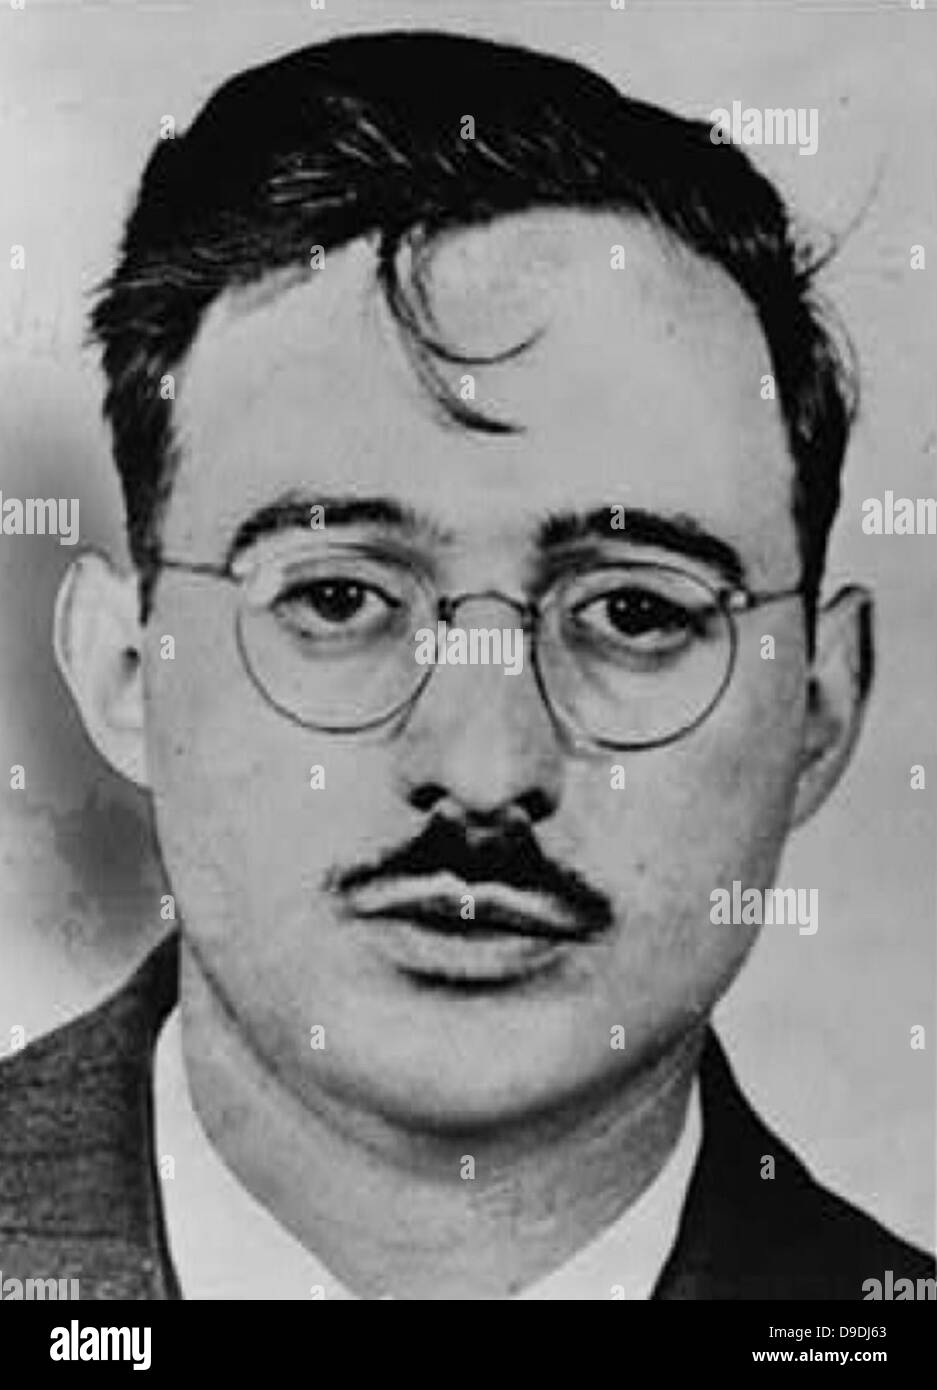 Julius Rosenberg convicted of conspiracy to commit espionage during a time of war, and executed. - Stock Image